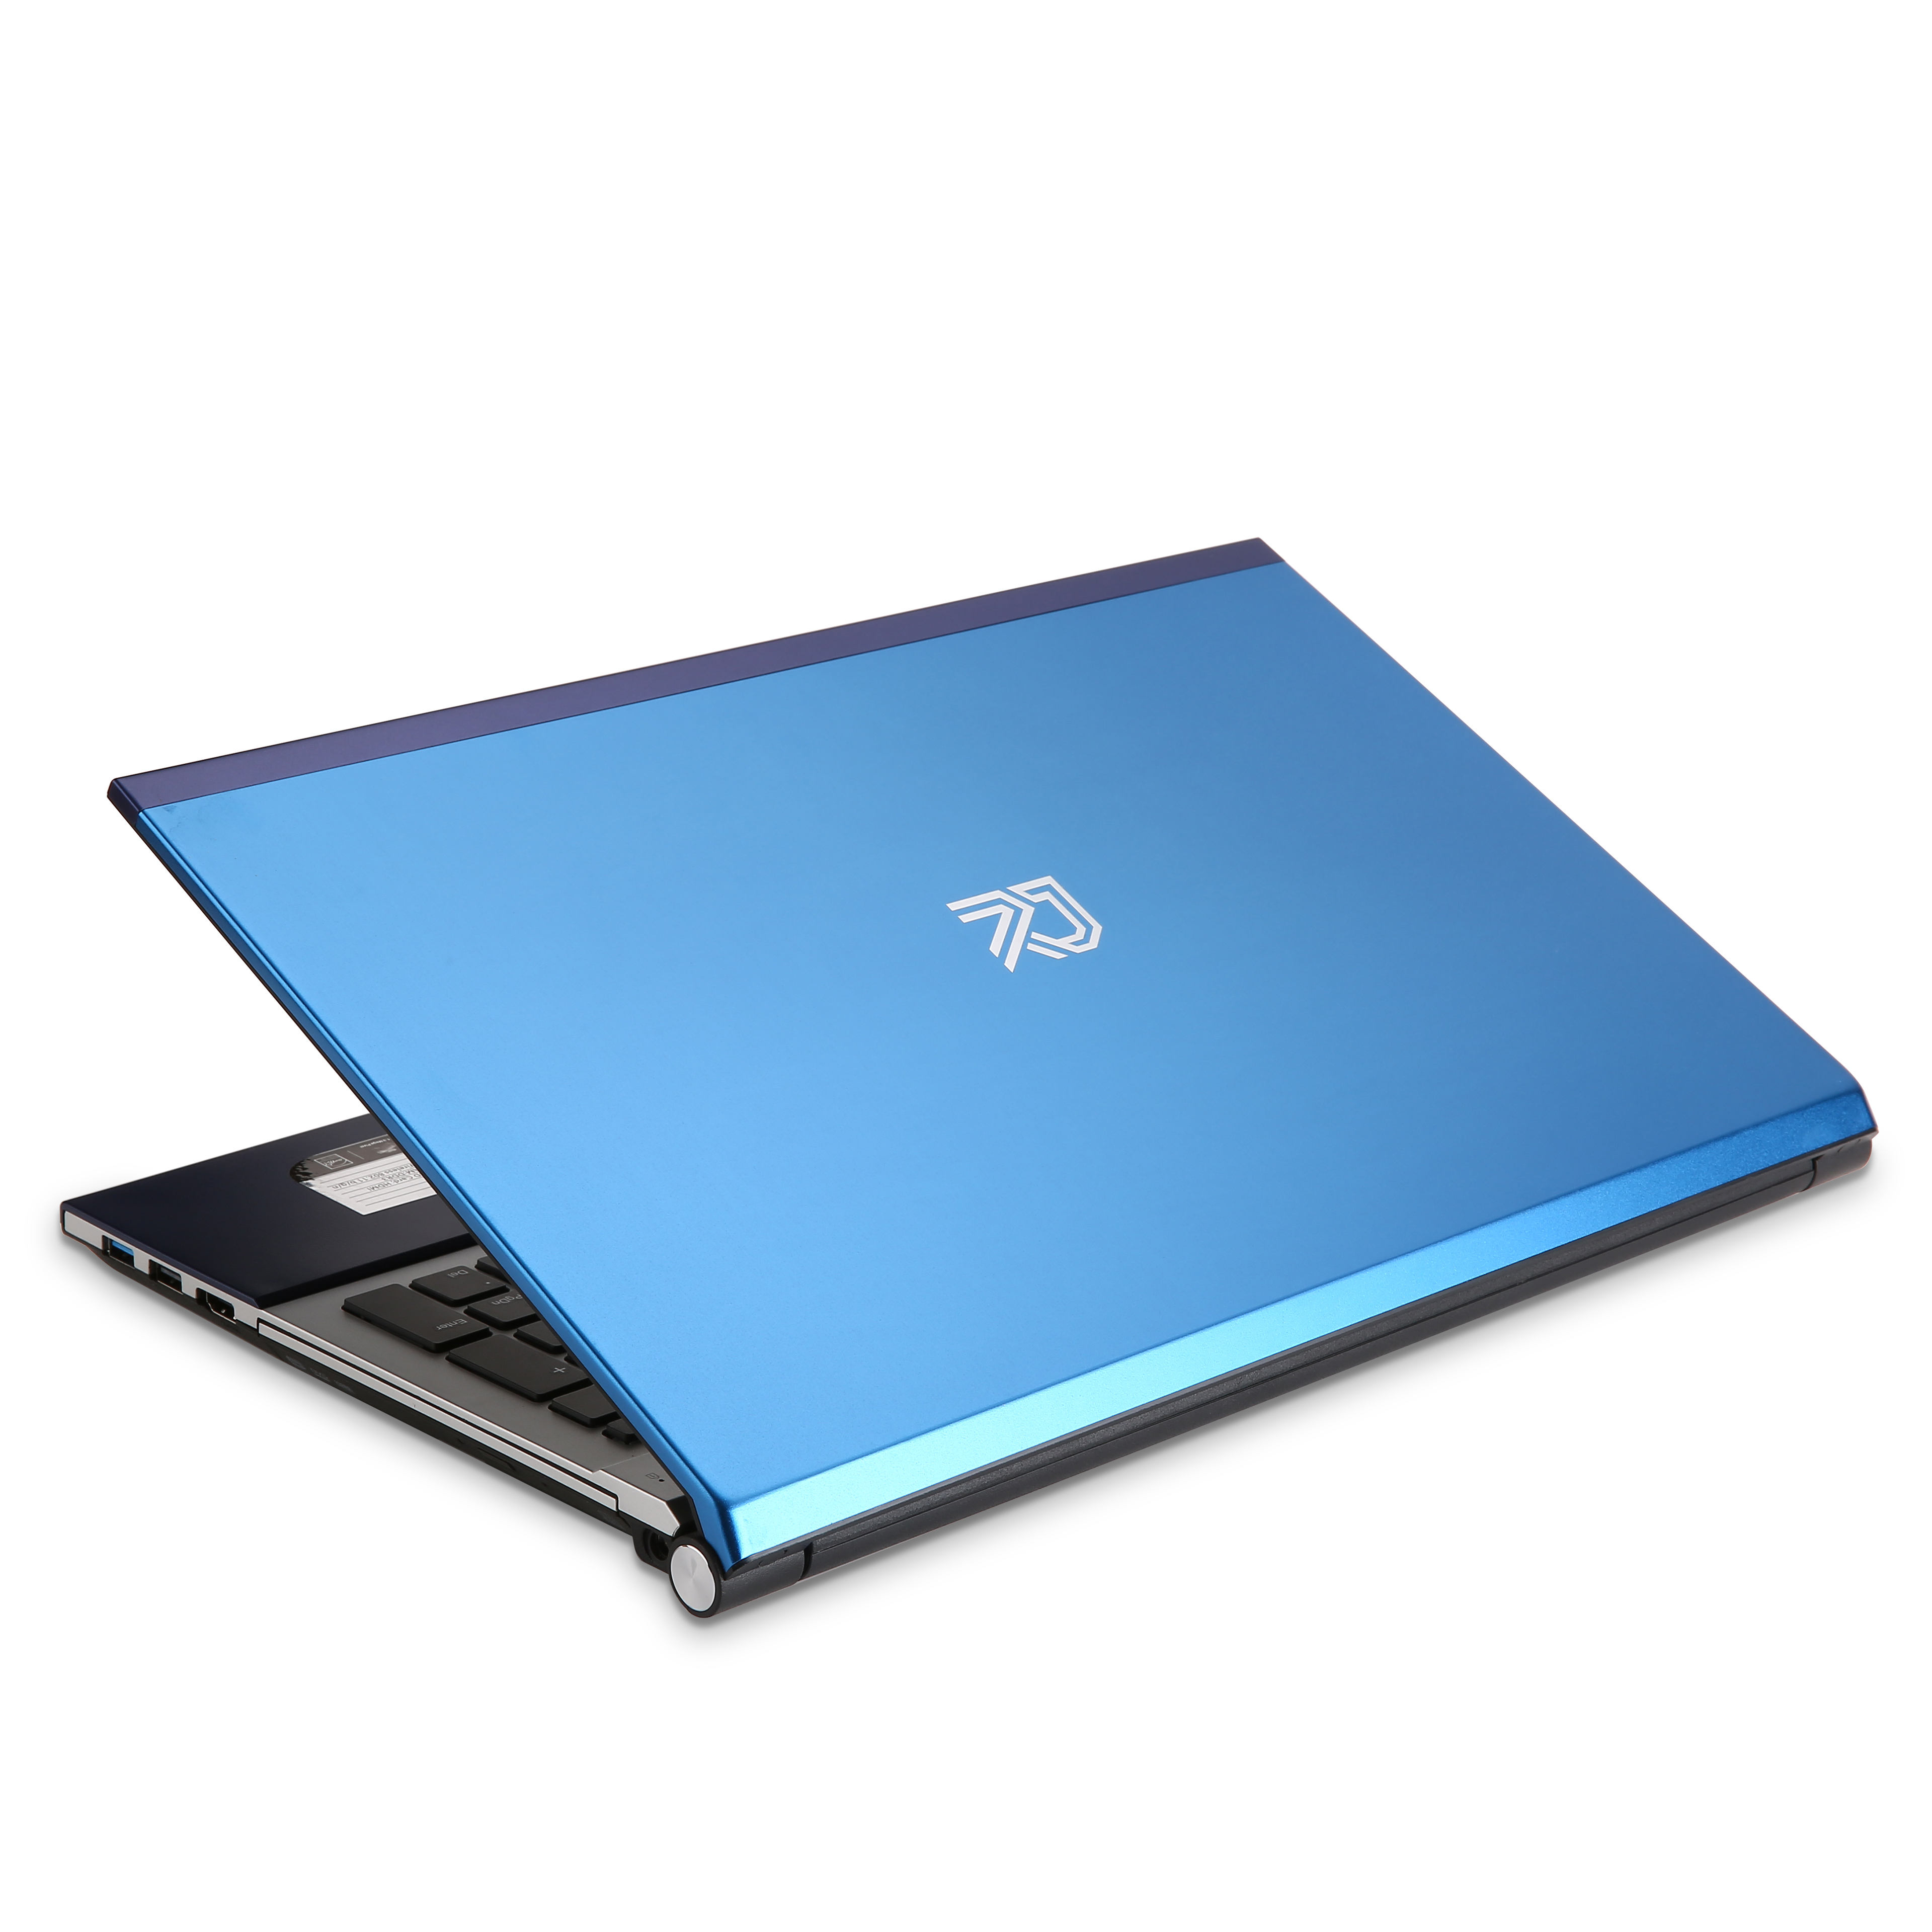 "Casing <span class=keywords><strong>Laptop</strong></span> 15.6 ""Intel Core I7, RAM 8GB SSD <span class=keywords><strong>Komputer</strong></span> Ram Tinggi dengan <span class=keywords><strong>DVD</strong></span> RW Win 10 Ultra Abook Warna Biru/Hitam"